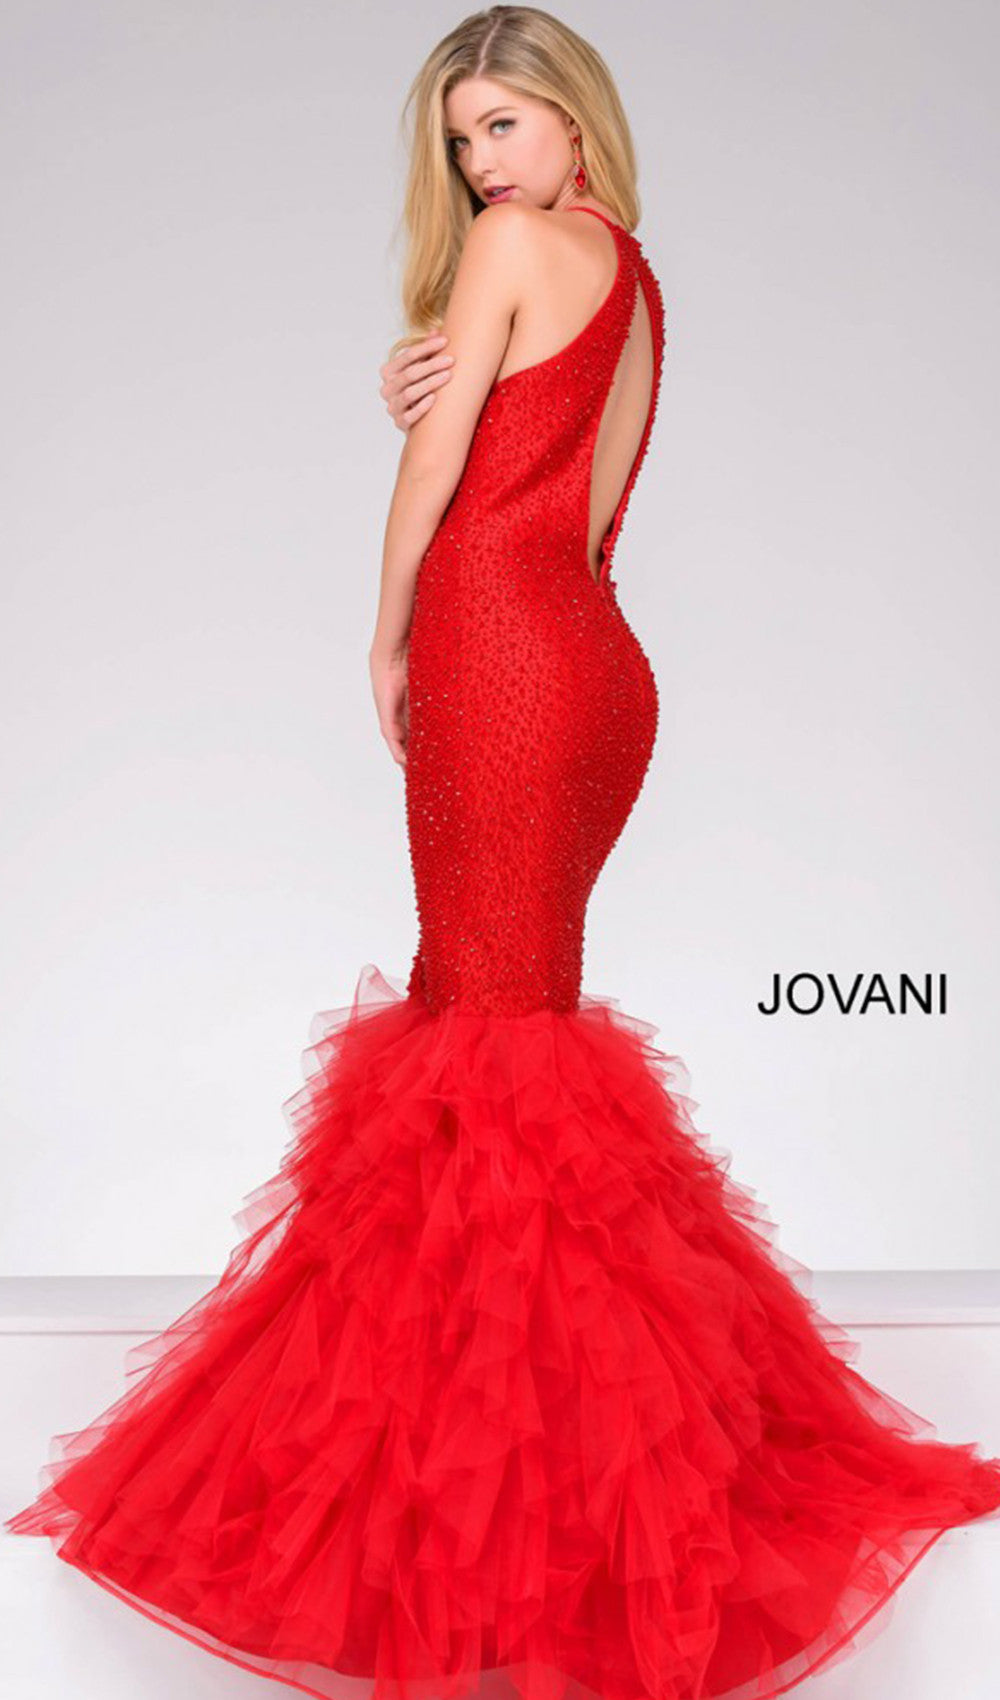 Fabulous Modern Mermaid Dress | Jovani - STYLE 37473 JOVANI- Schaffer's Bridal in Des Moines & Phoenix